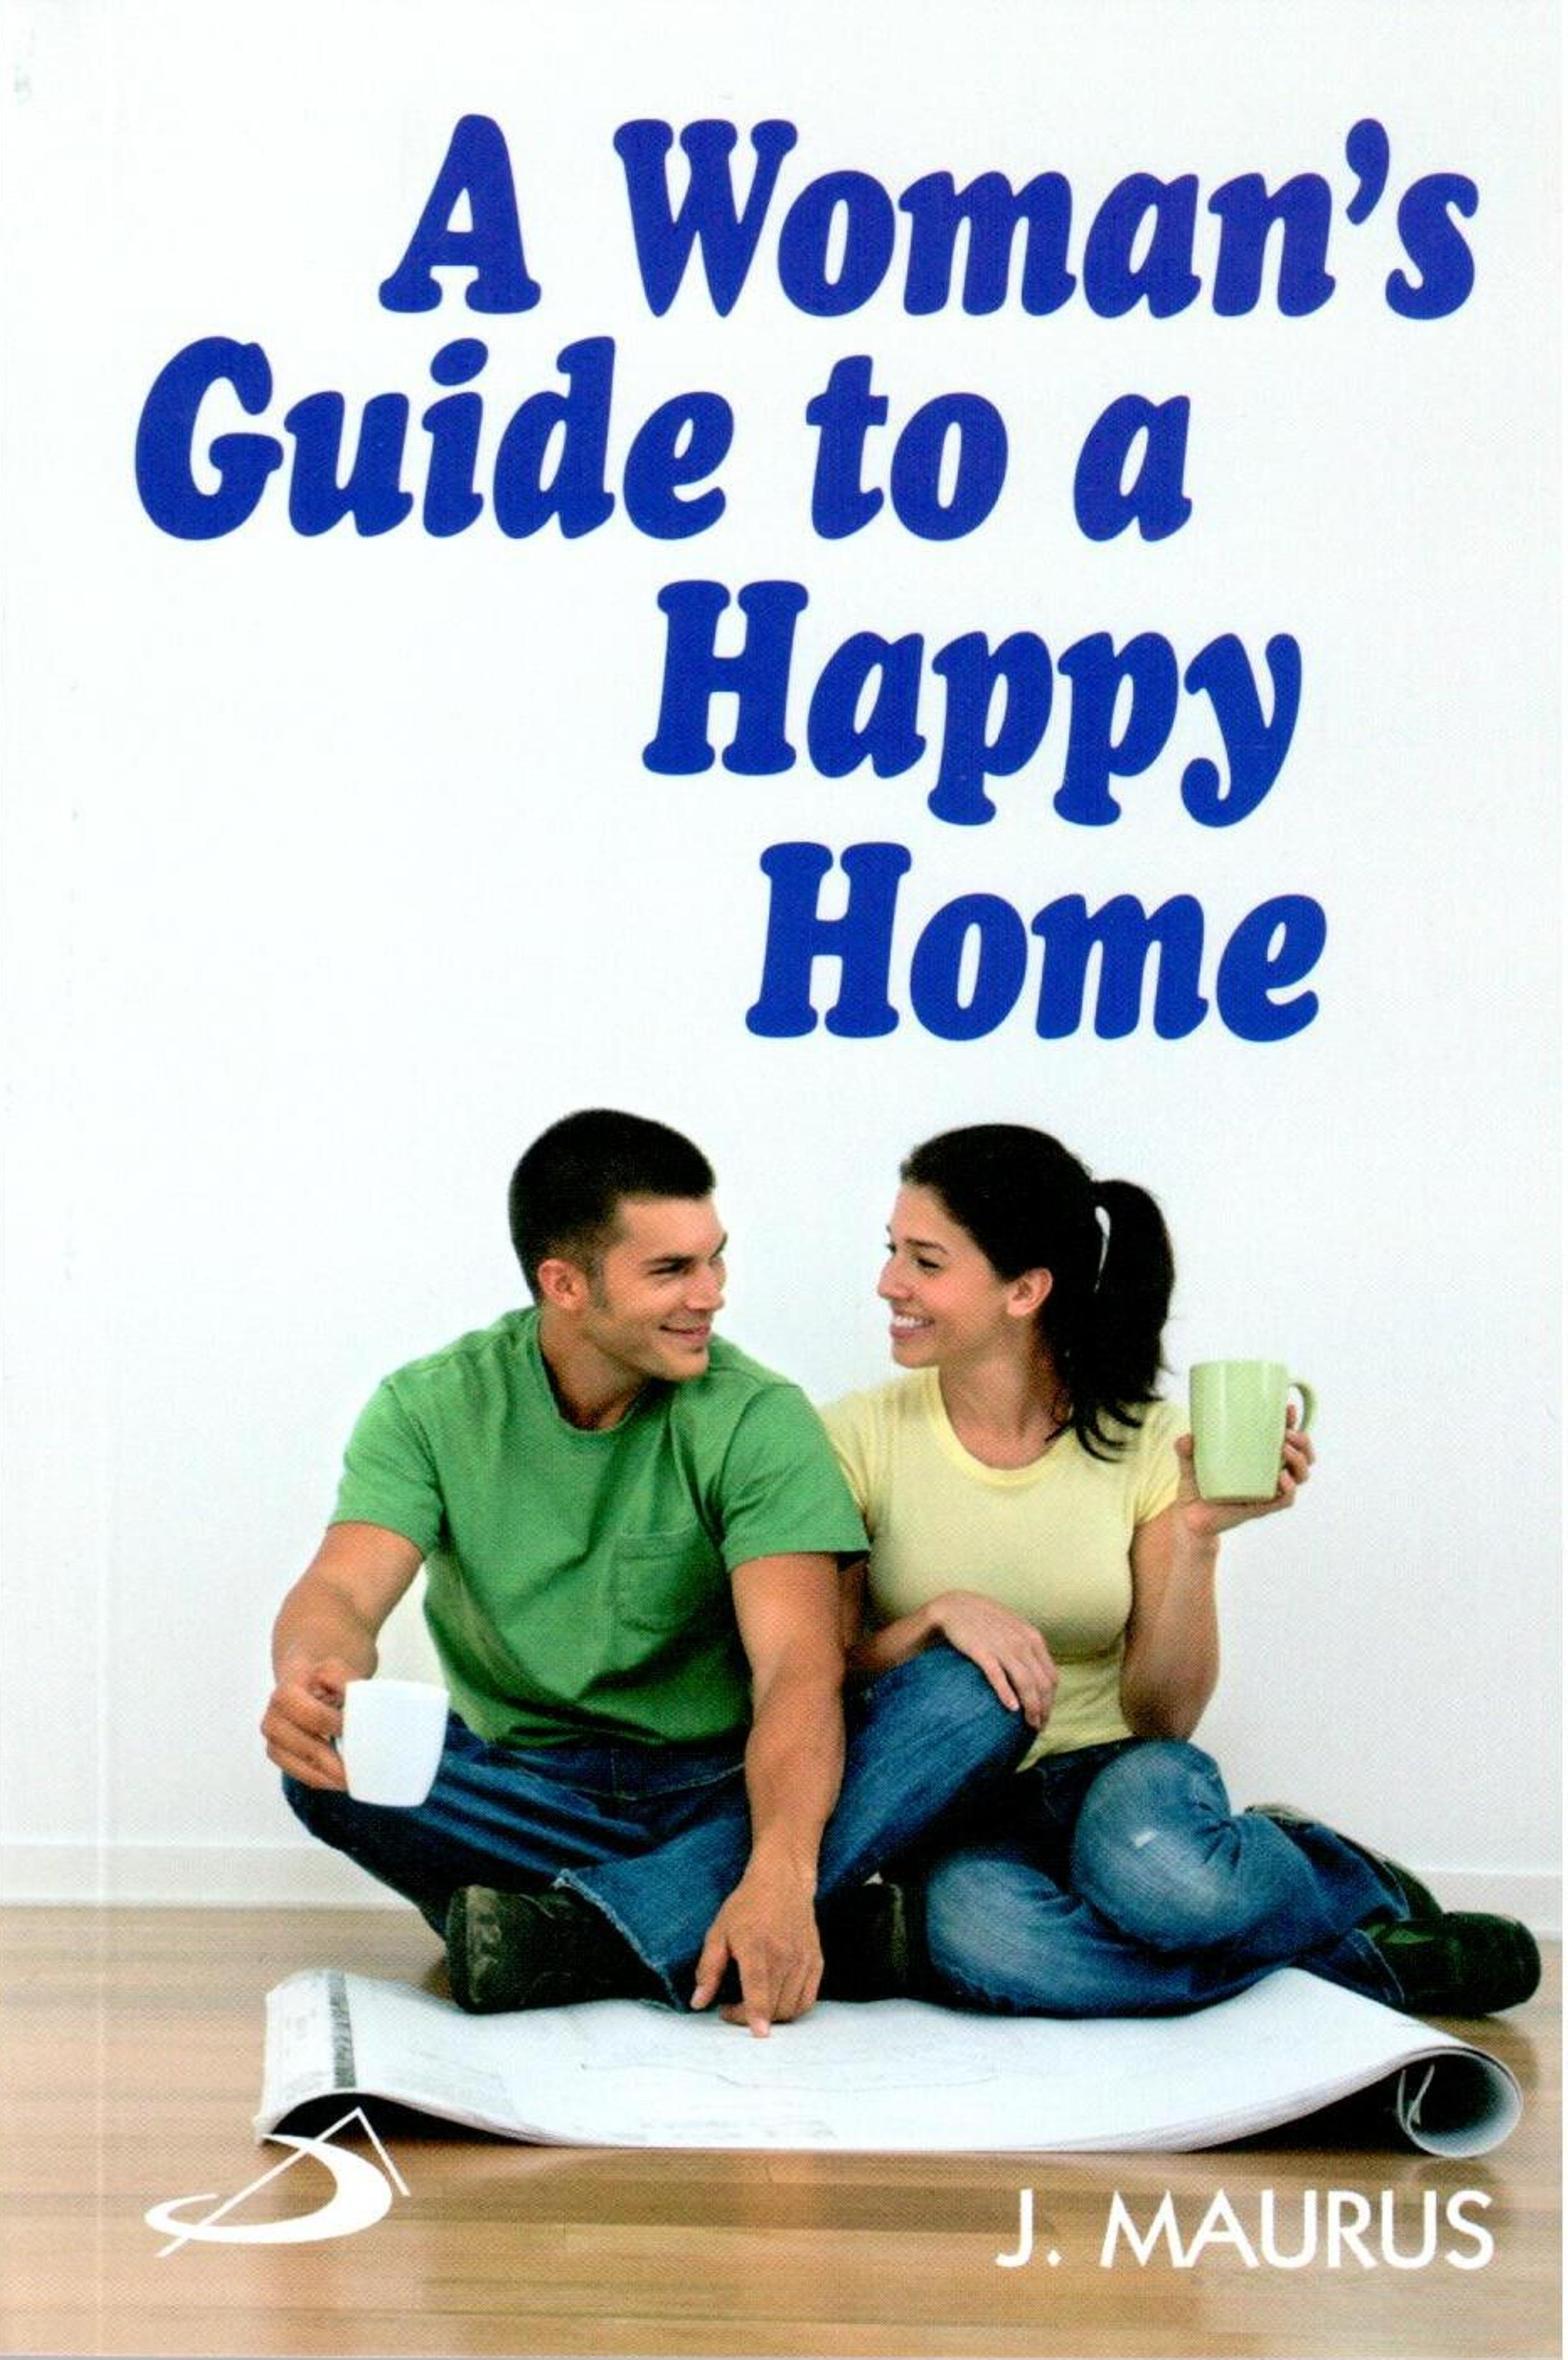 A Womans Guide to a Happy Home J. Maurus